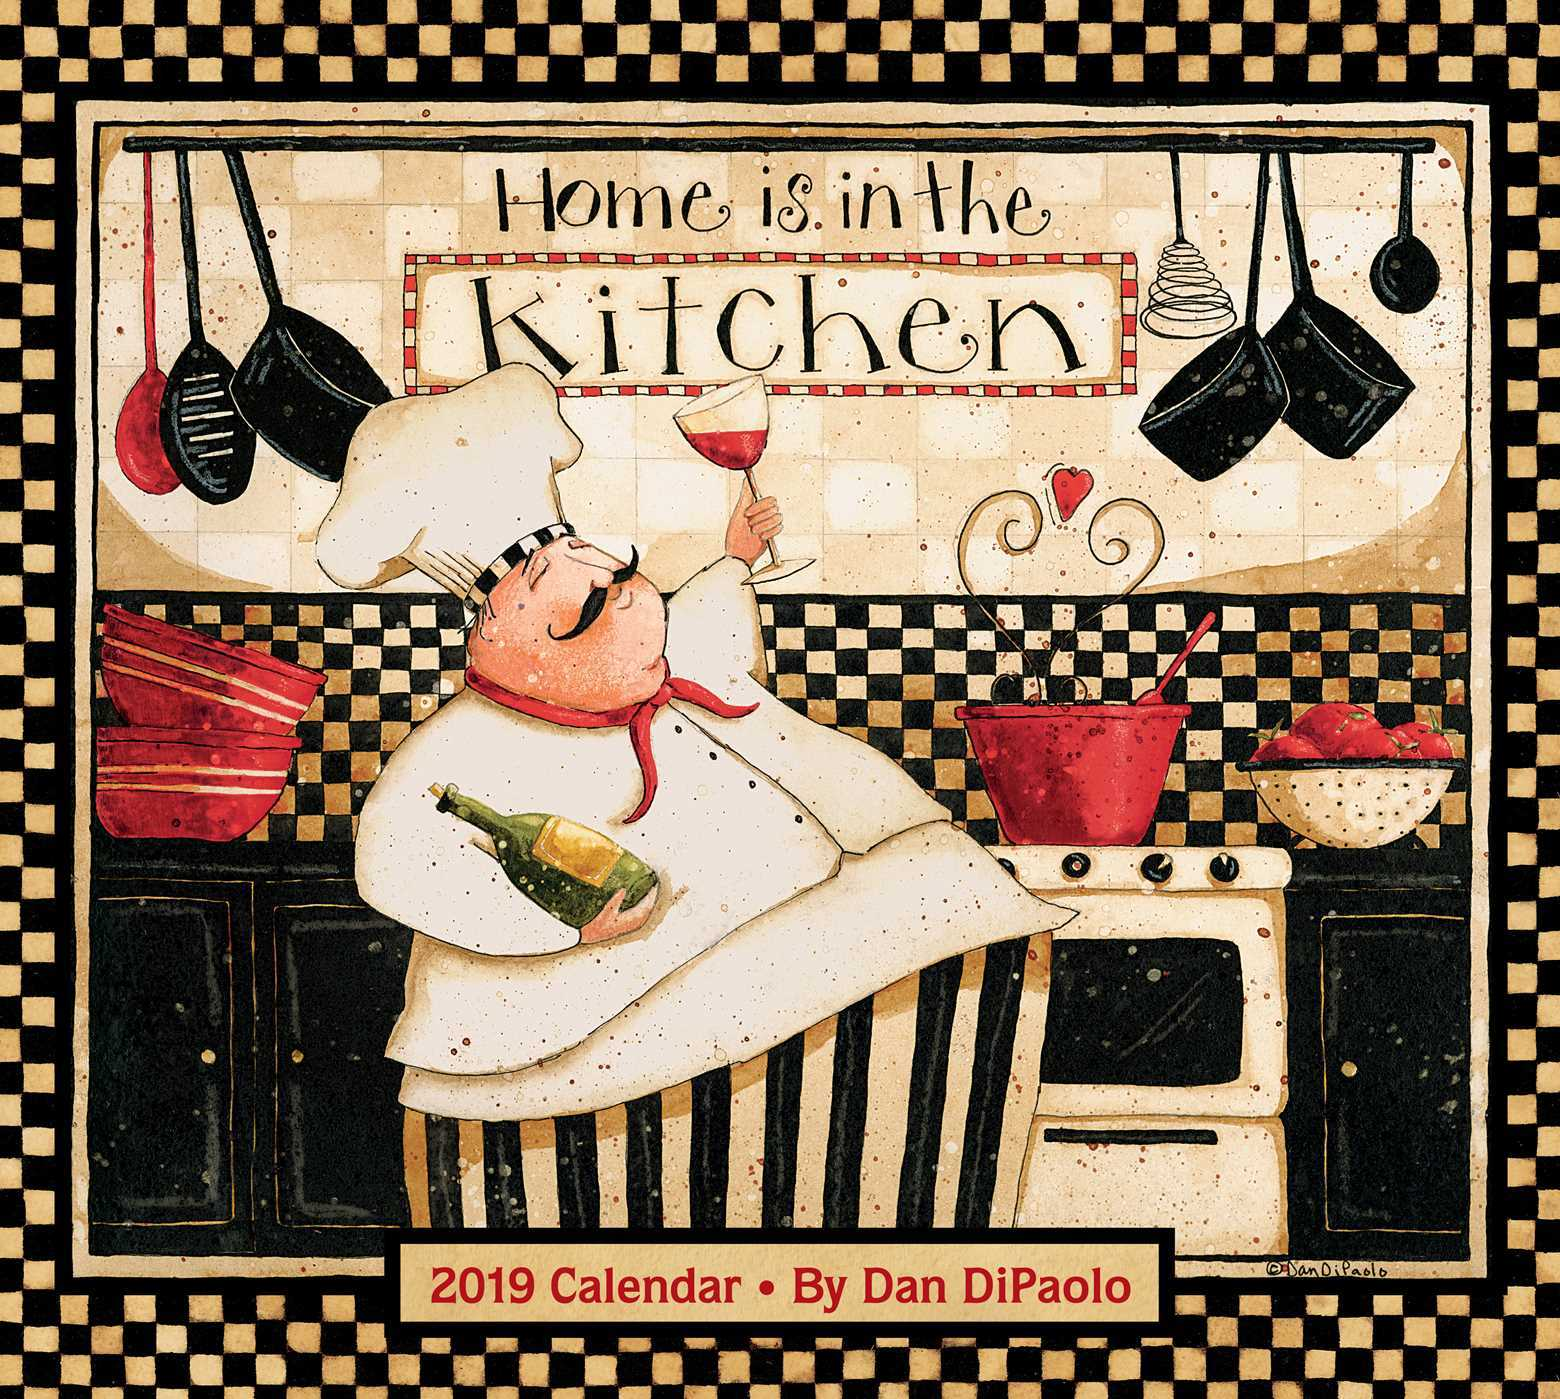 Home Is in the Kitchen 2019 Deluxe Wall Calendar